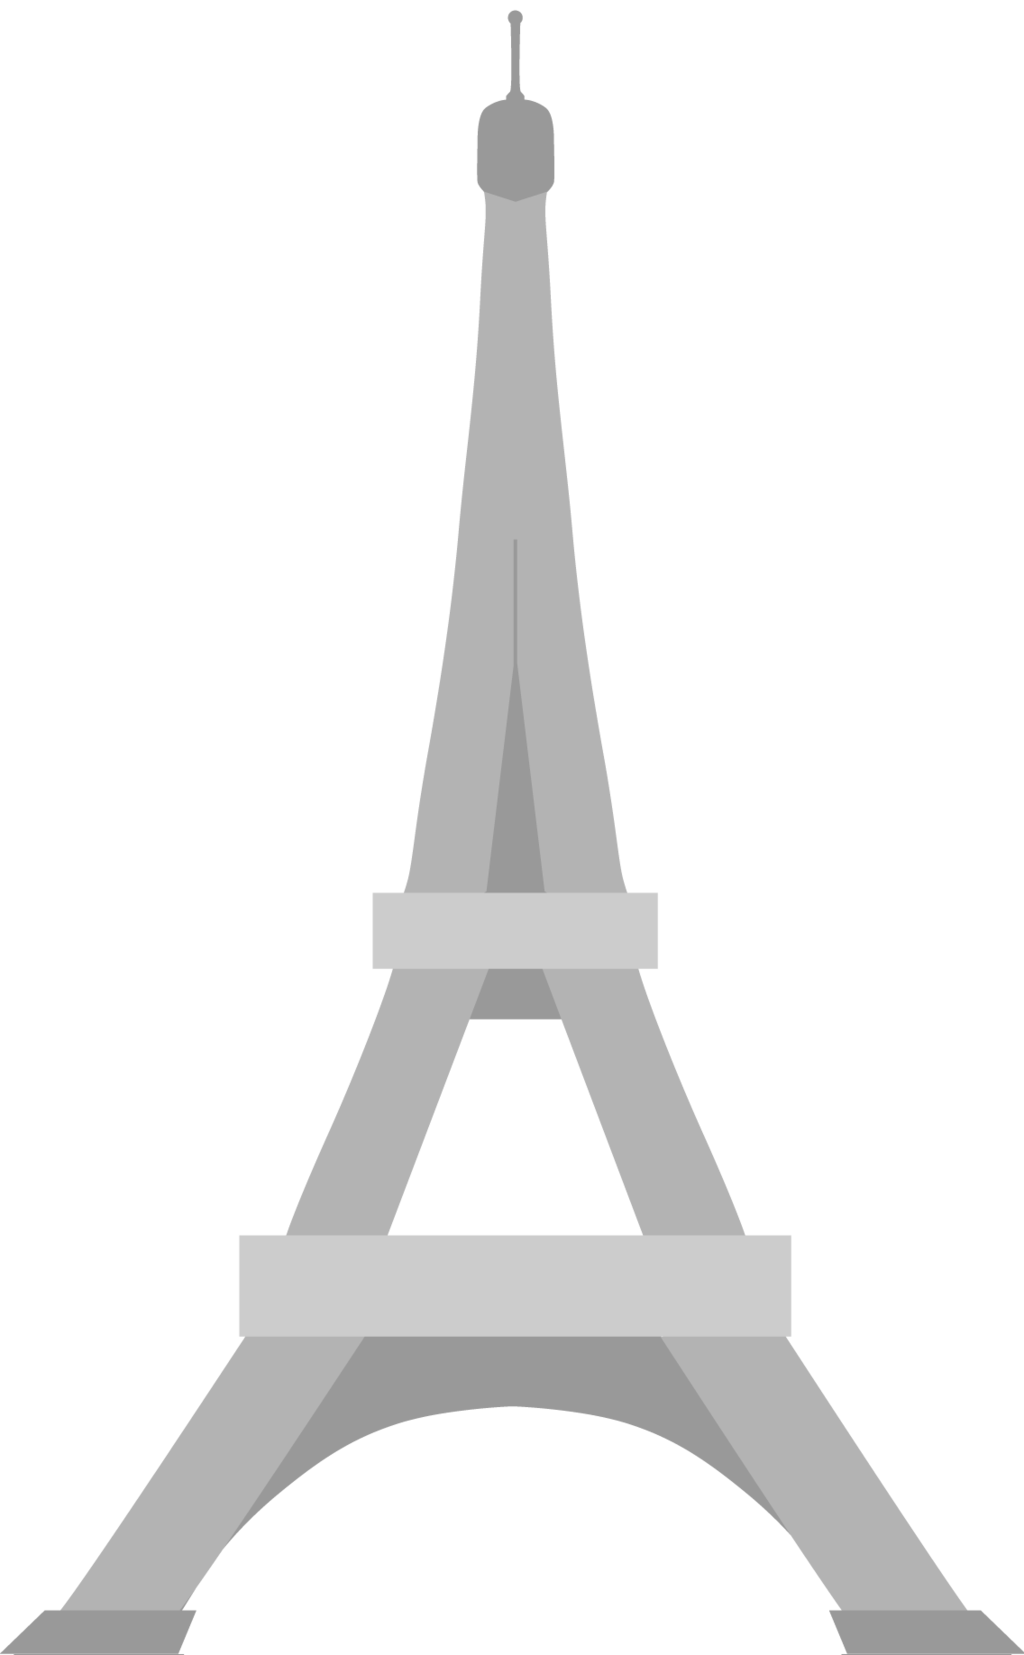 Eiffel Tower svg #3, Download drawings